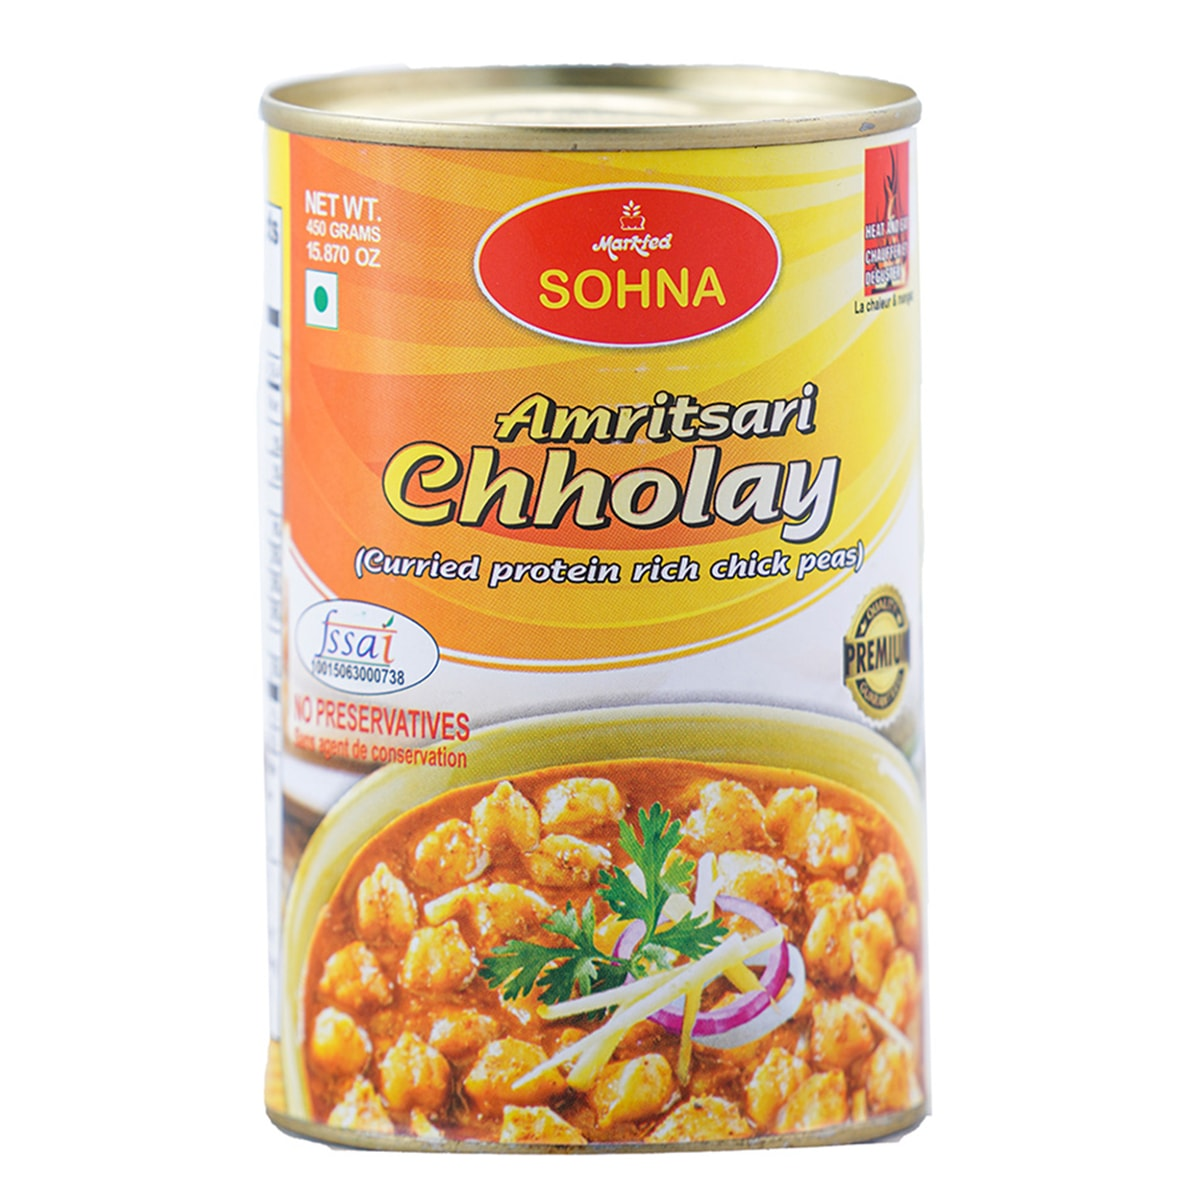 Buy Markfed Sohna Amritsari Chholay (Curried Protein-Rich Chick Peas) - 450 gm